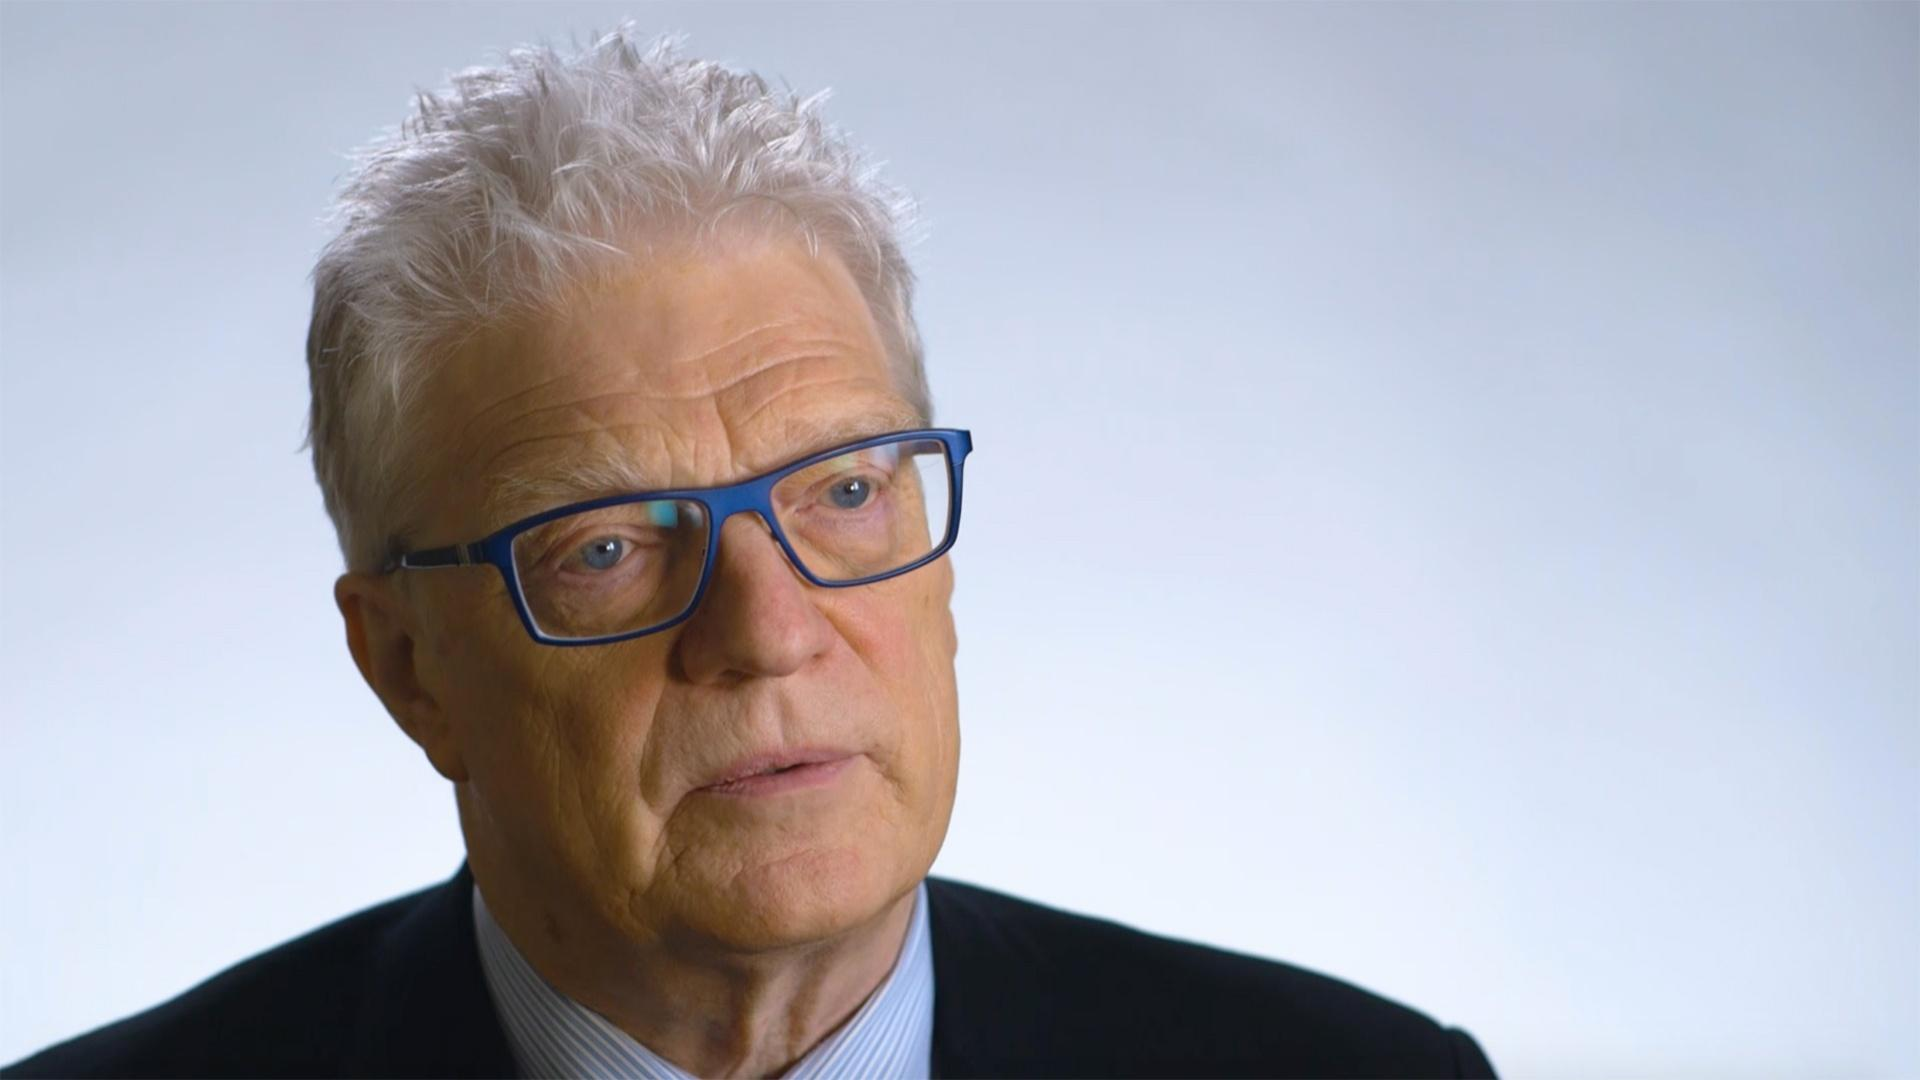 Sir Ken Robinson: PBS' Role in Advancing Education